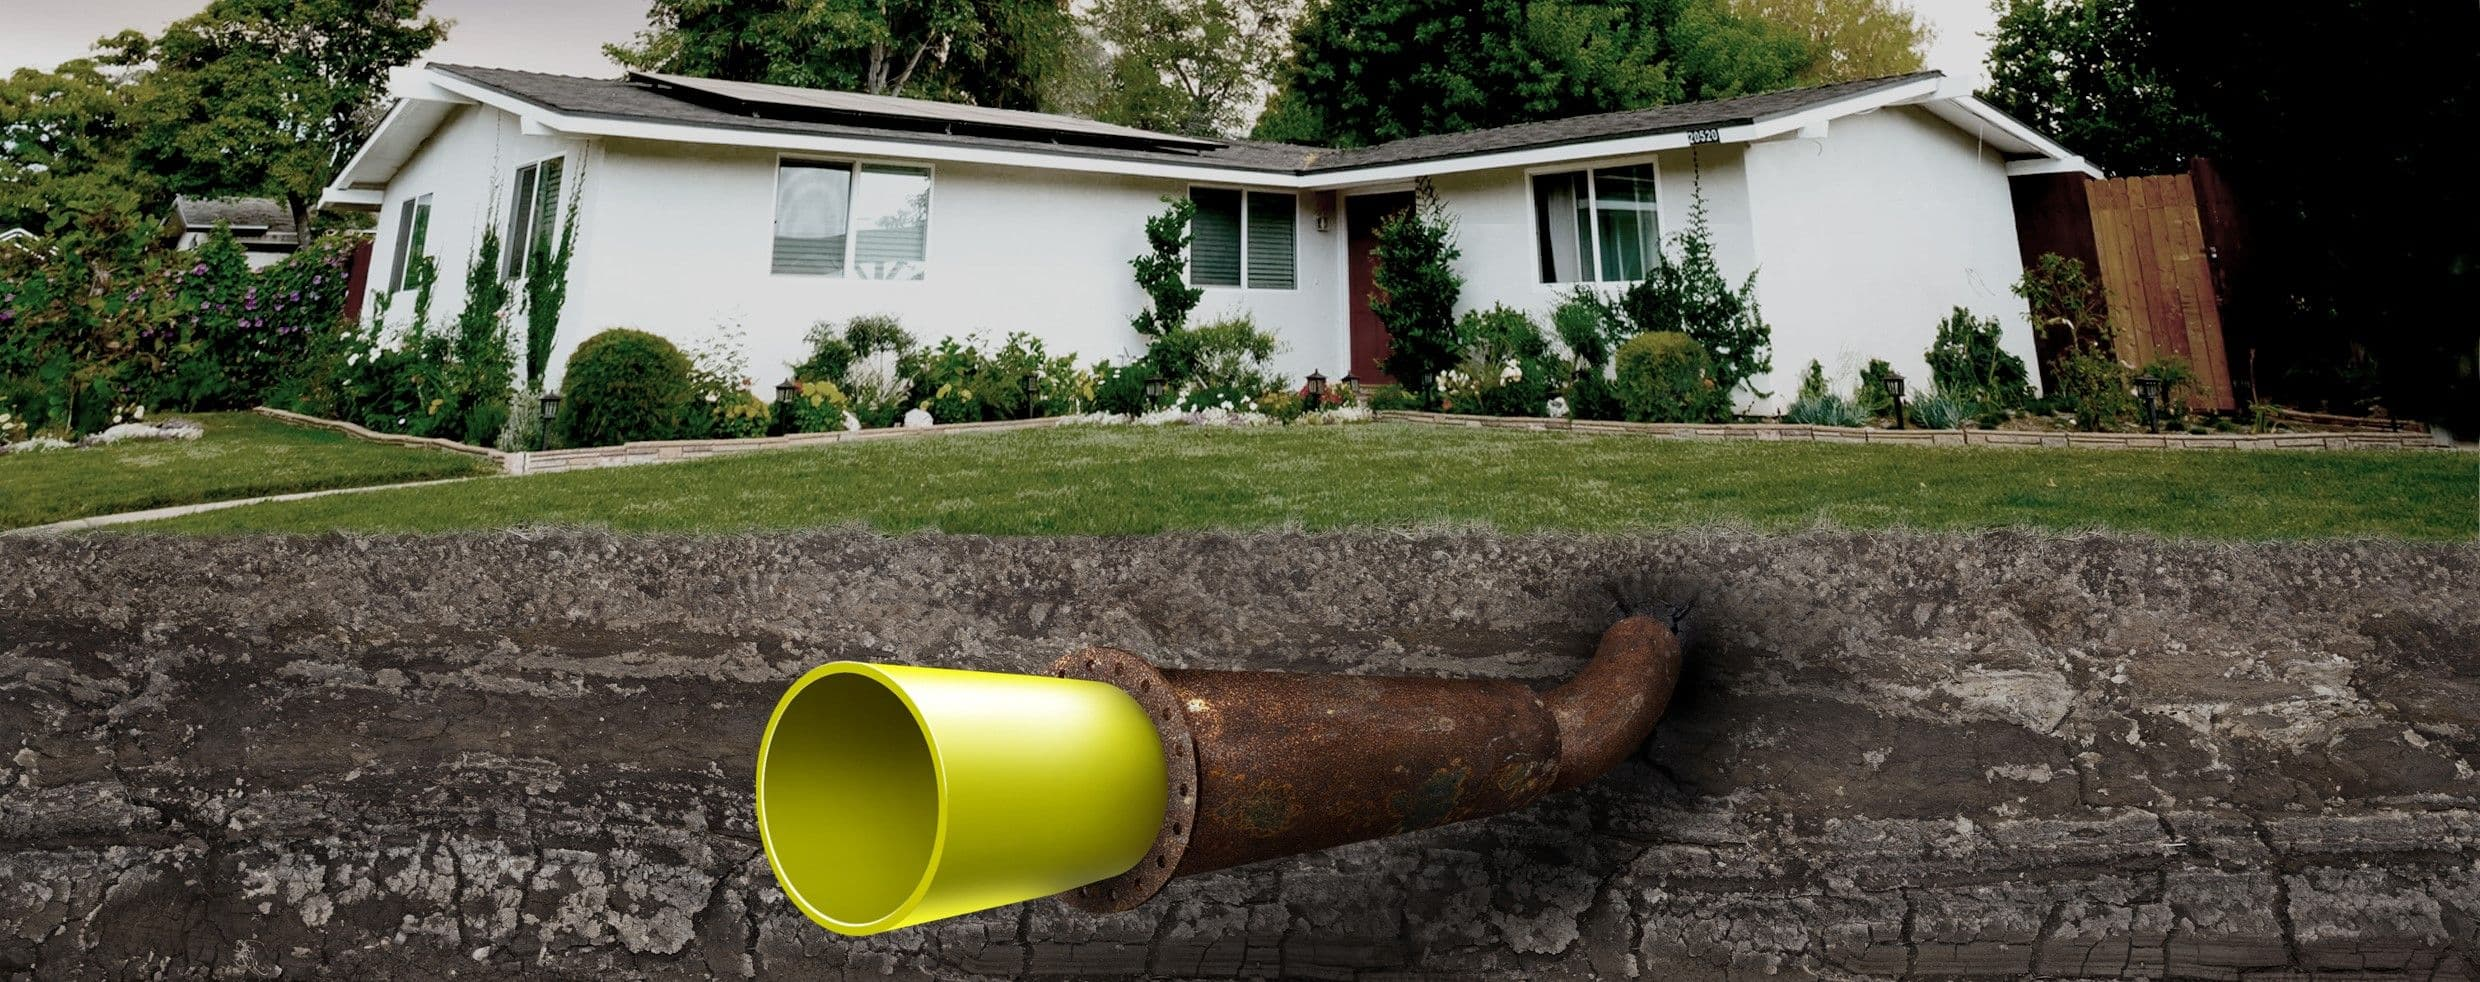 A Relined Pipe Running Under a House